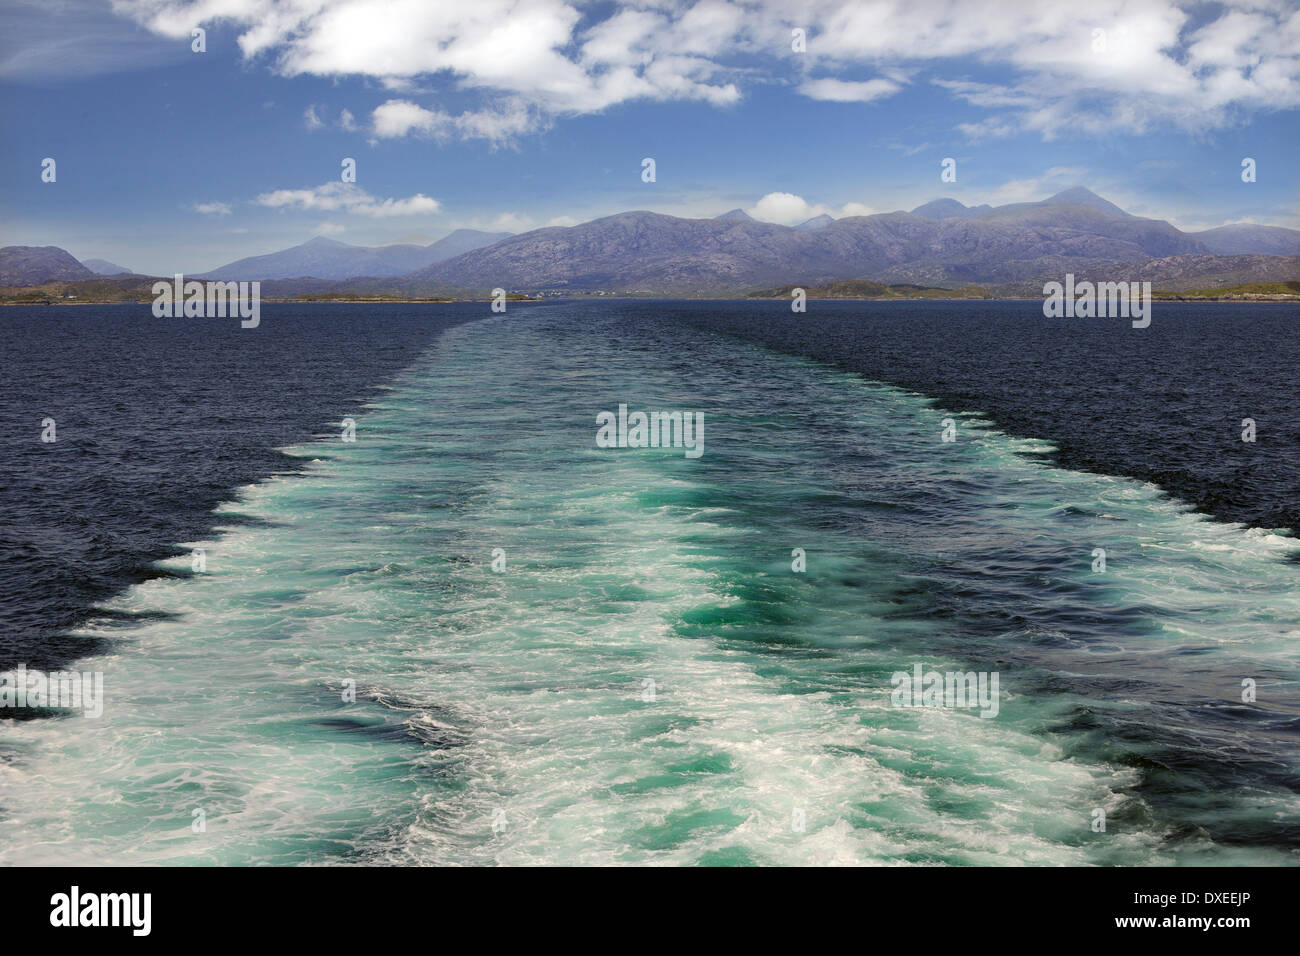 Veiw from the departing Clansman towards Tarbert, Isle of Harris, Outer Hebrides. - Stock Image